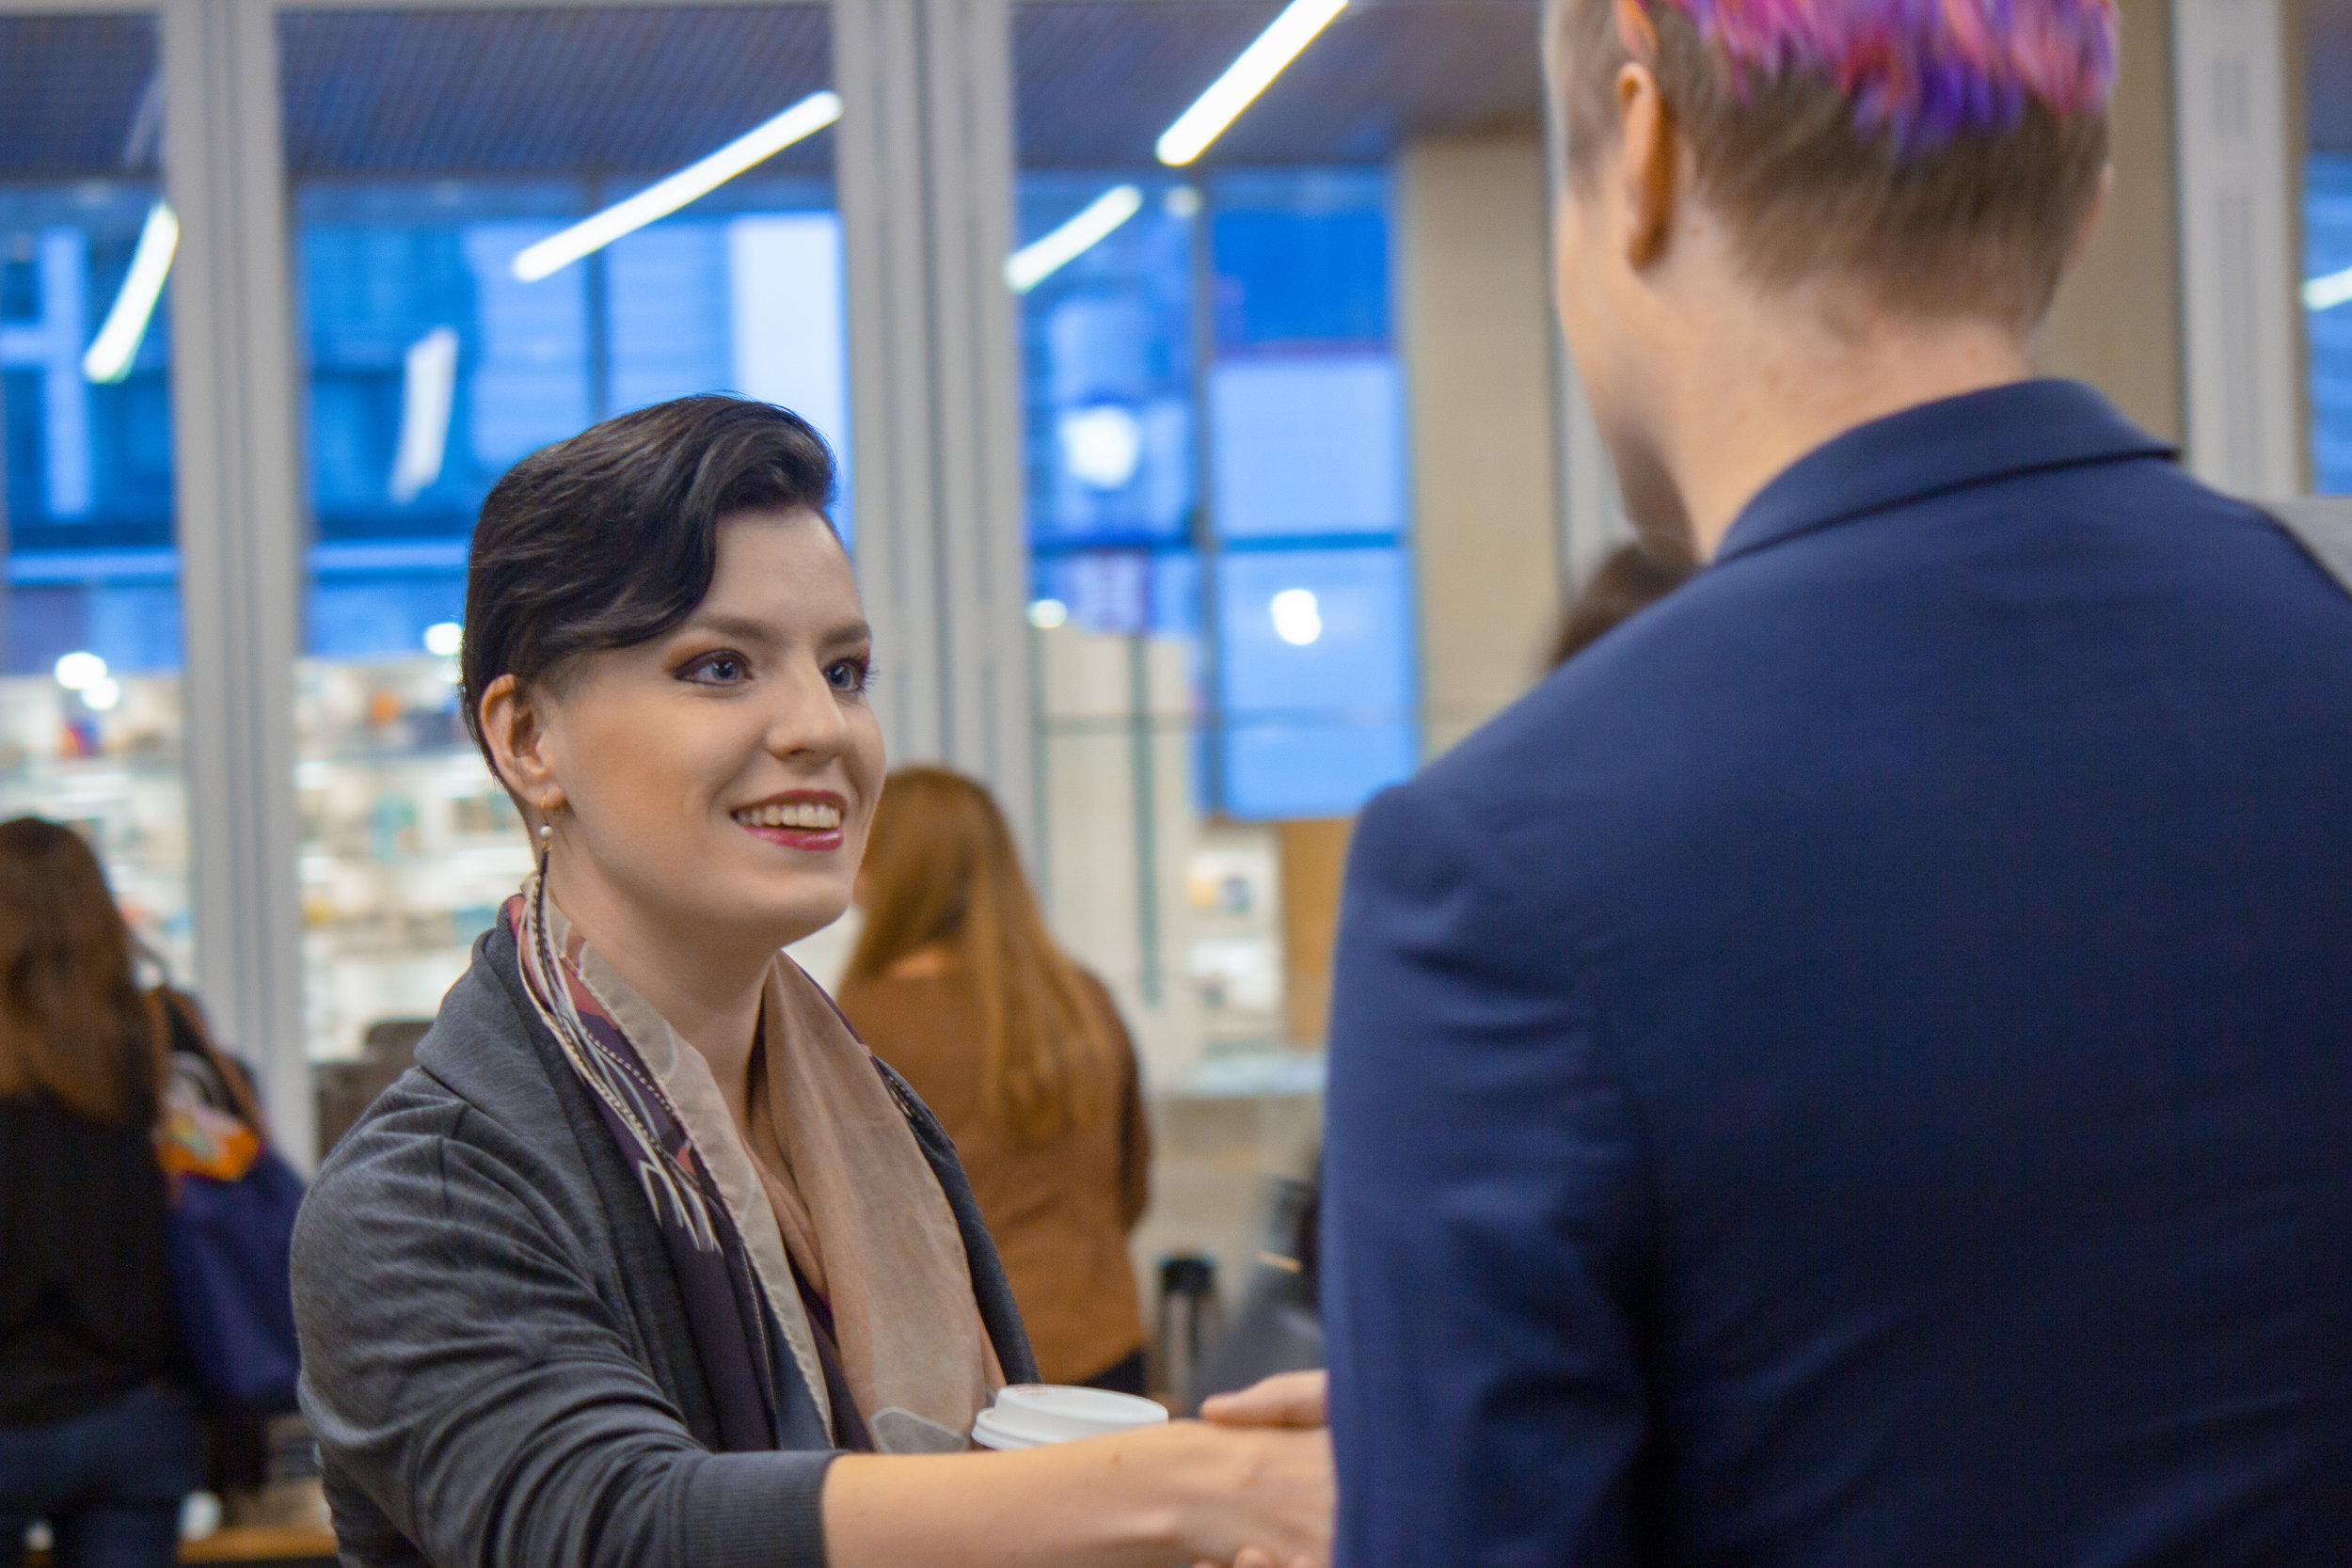 Networking - Make meaningful connections with individuals and tech companies that make up our ecosystem.